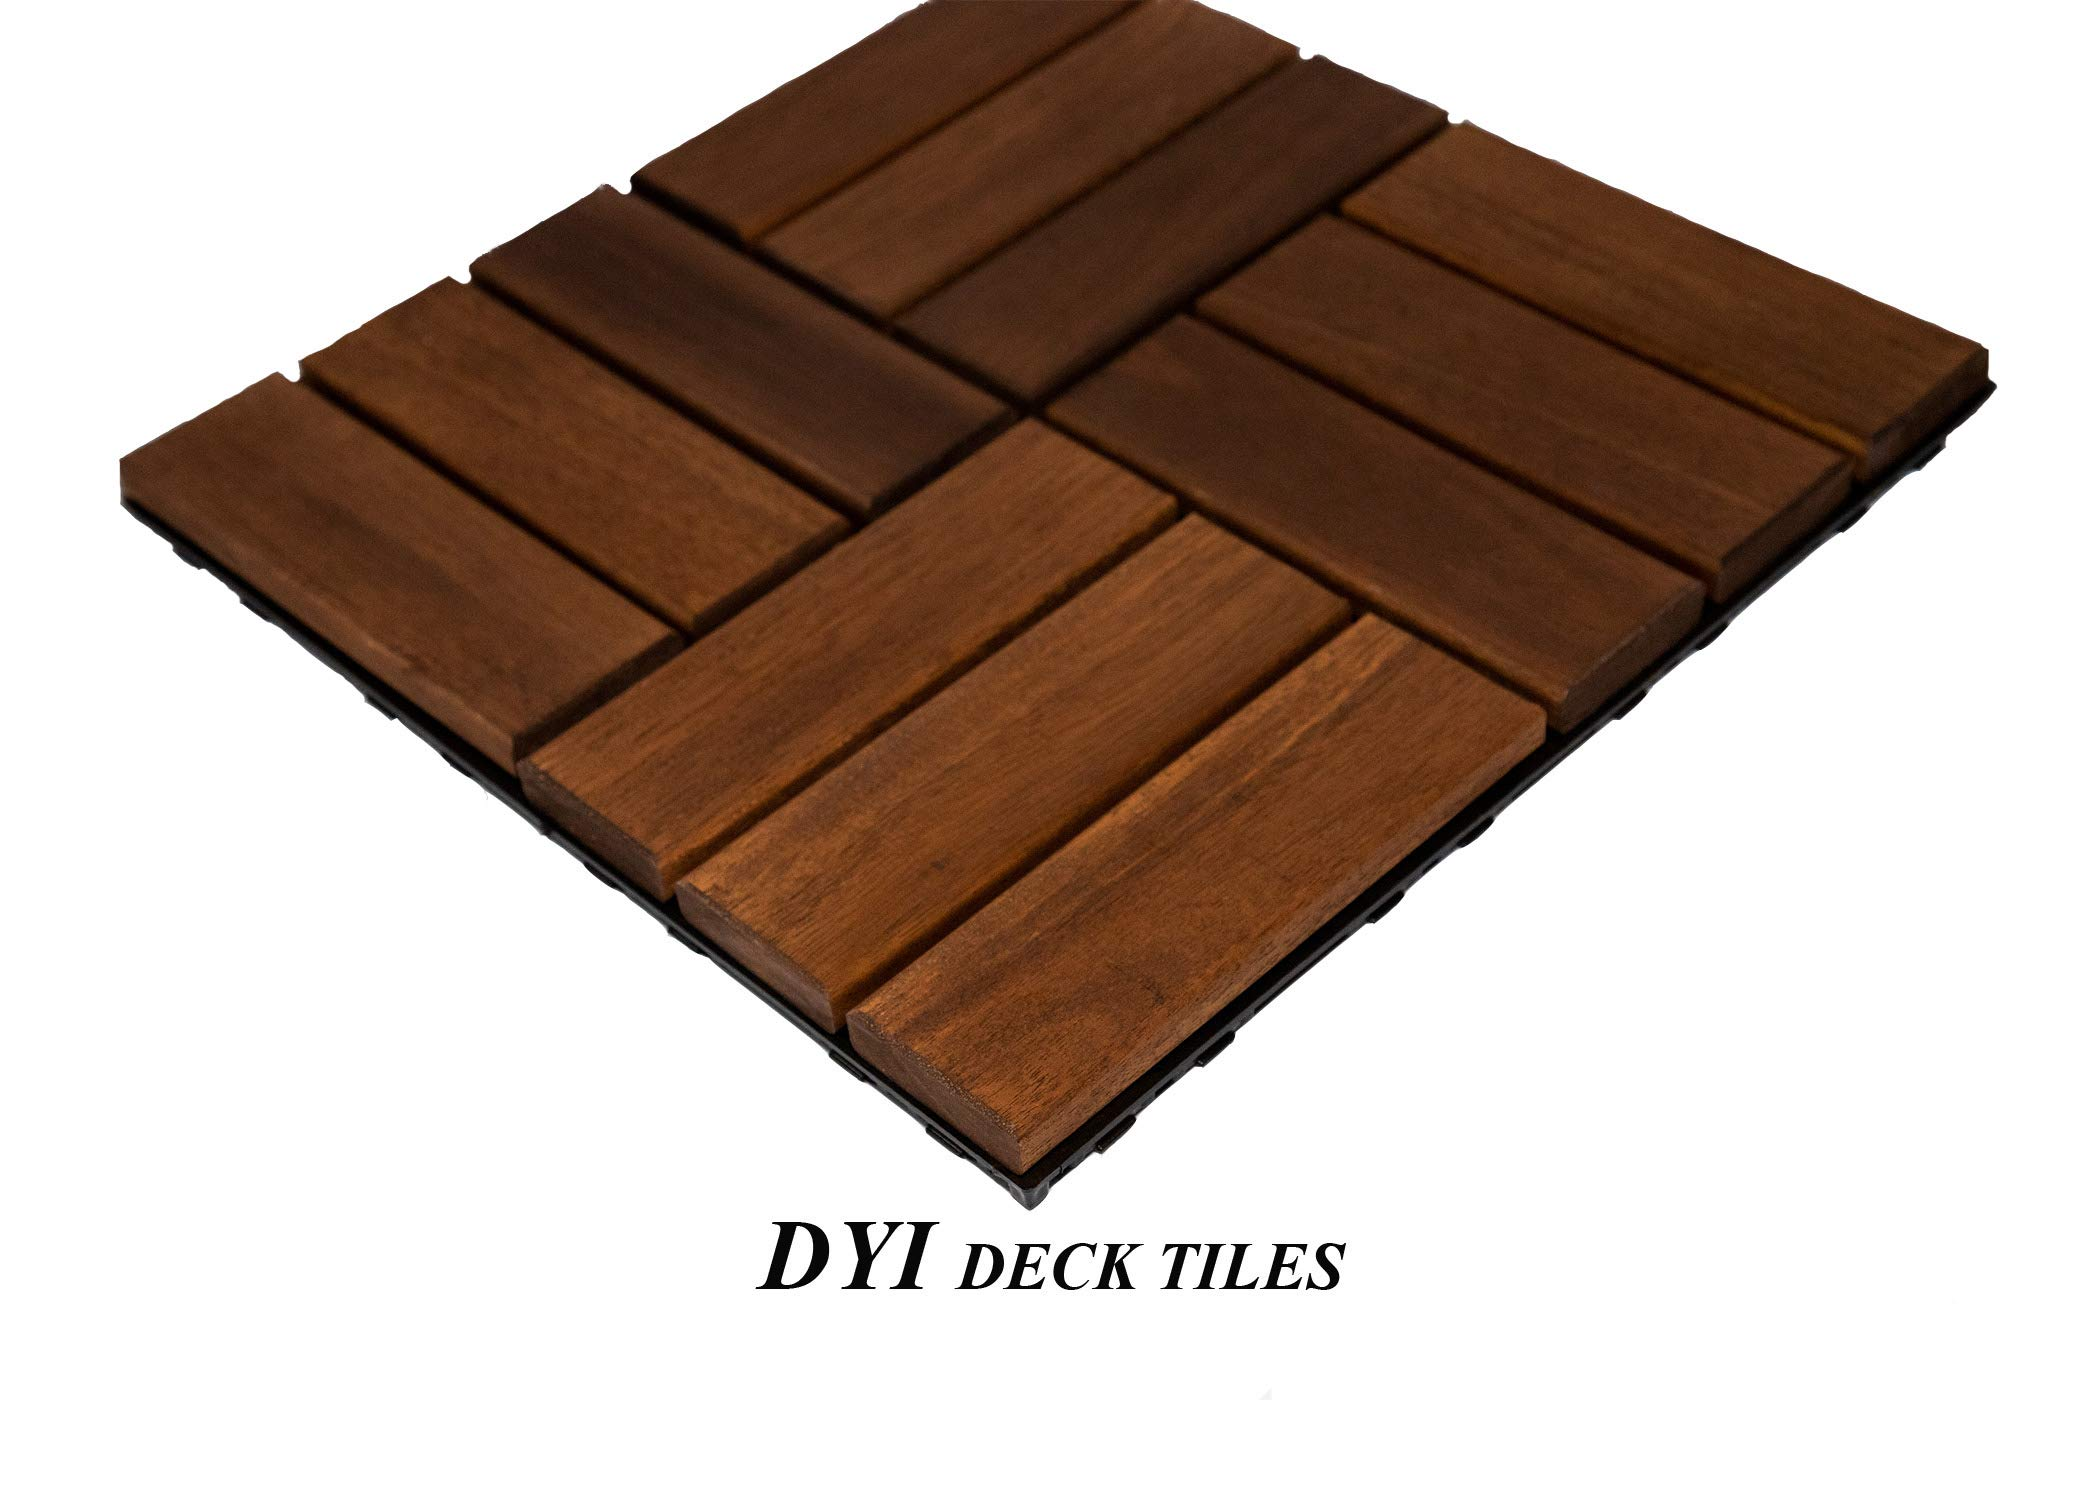 "Lofty Homes Interlocking DIY Floor Decking Tiles, 12"" x 12"", Pack of 10, Checker Brown"